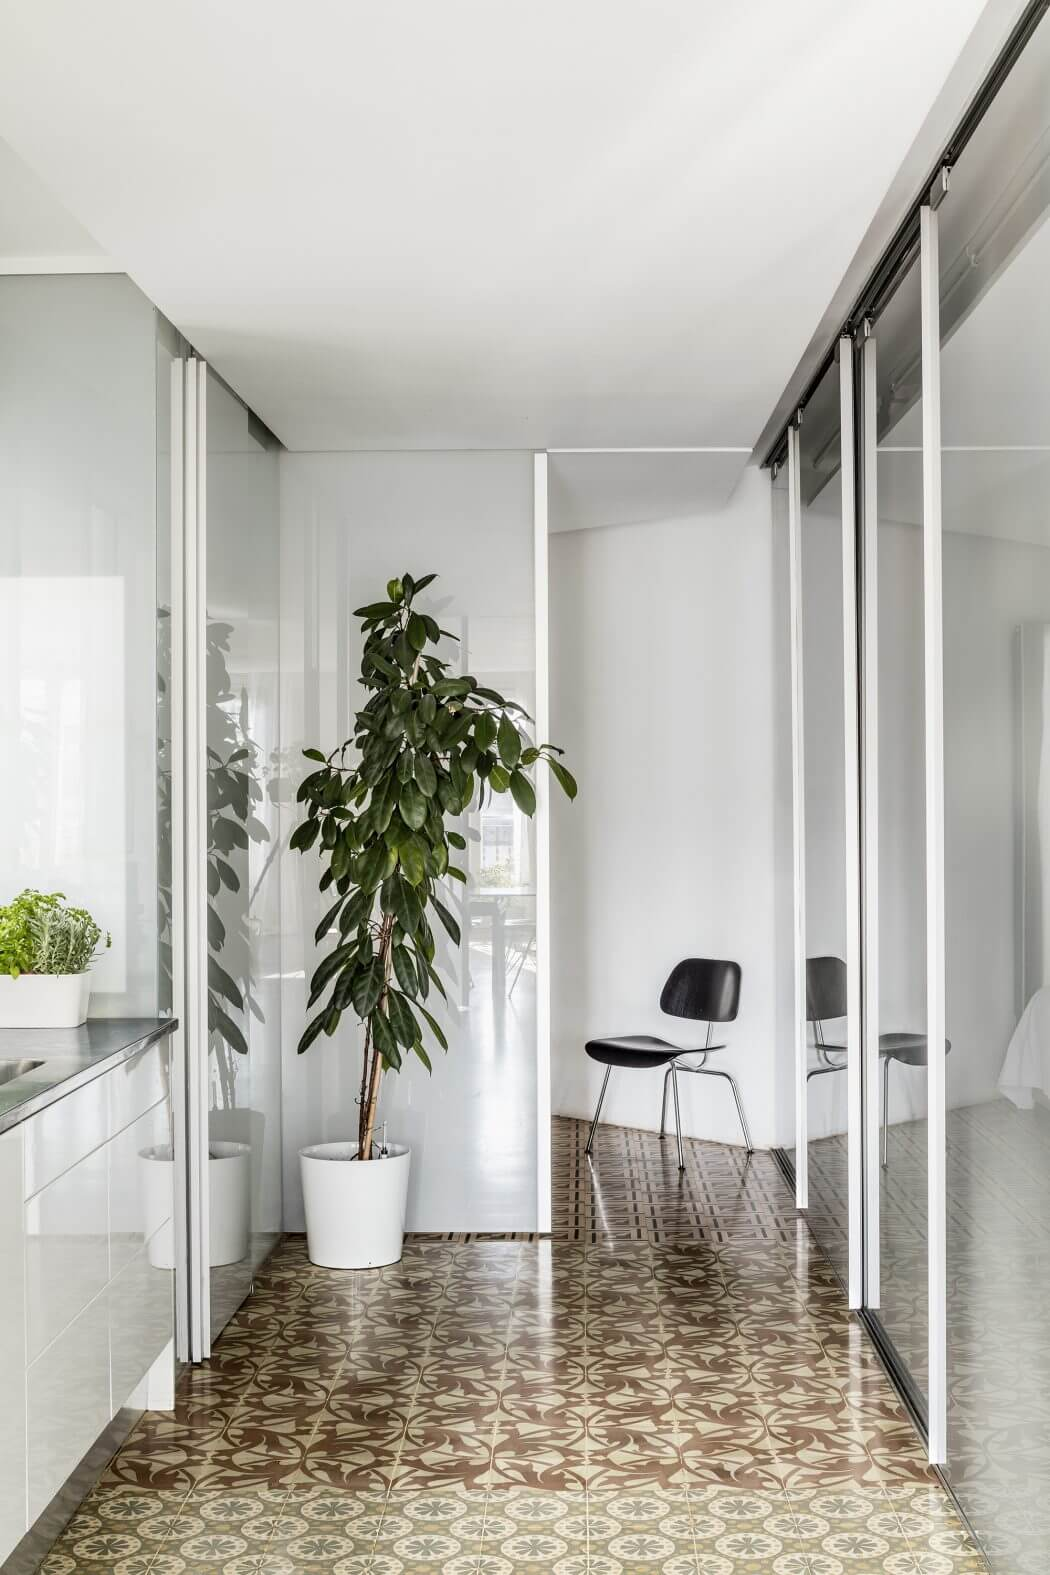 006-apartment-barcelona-narch-1050x1575